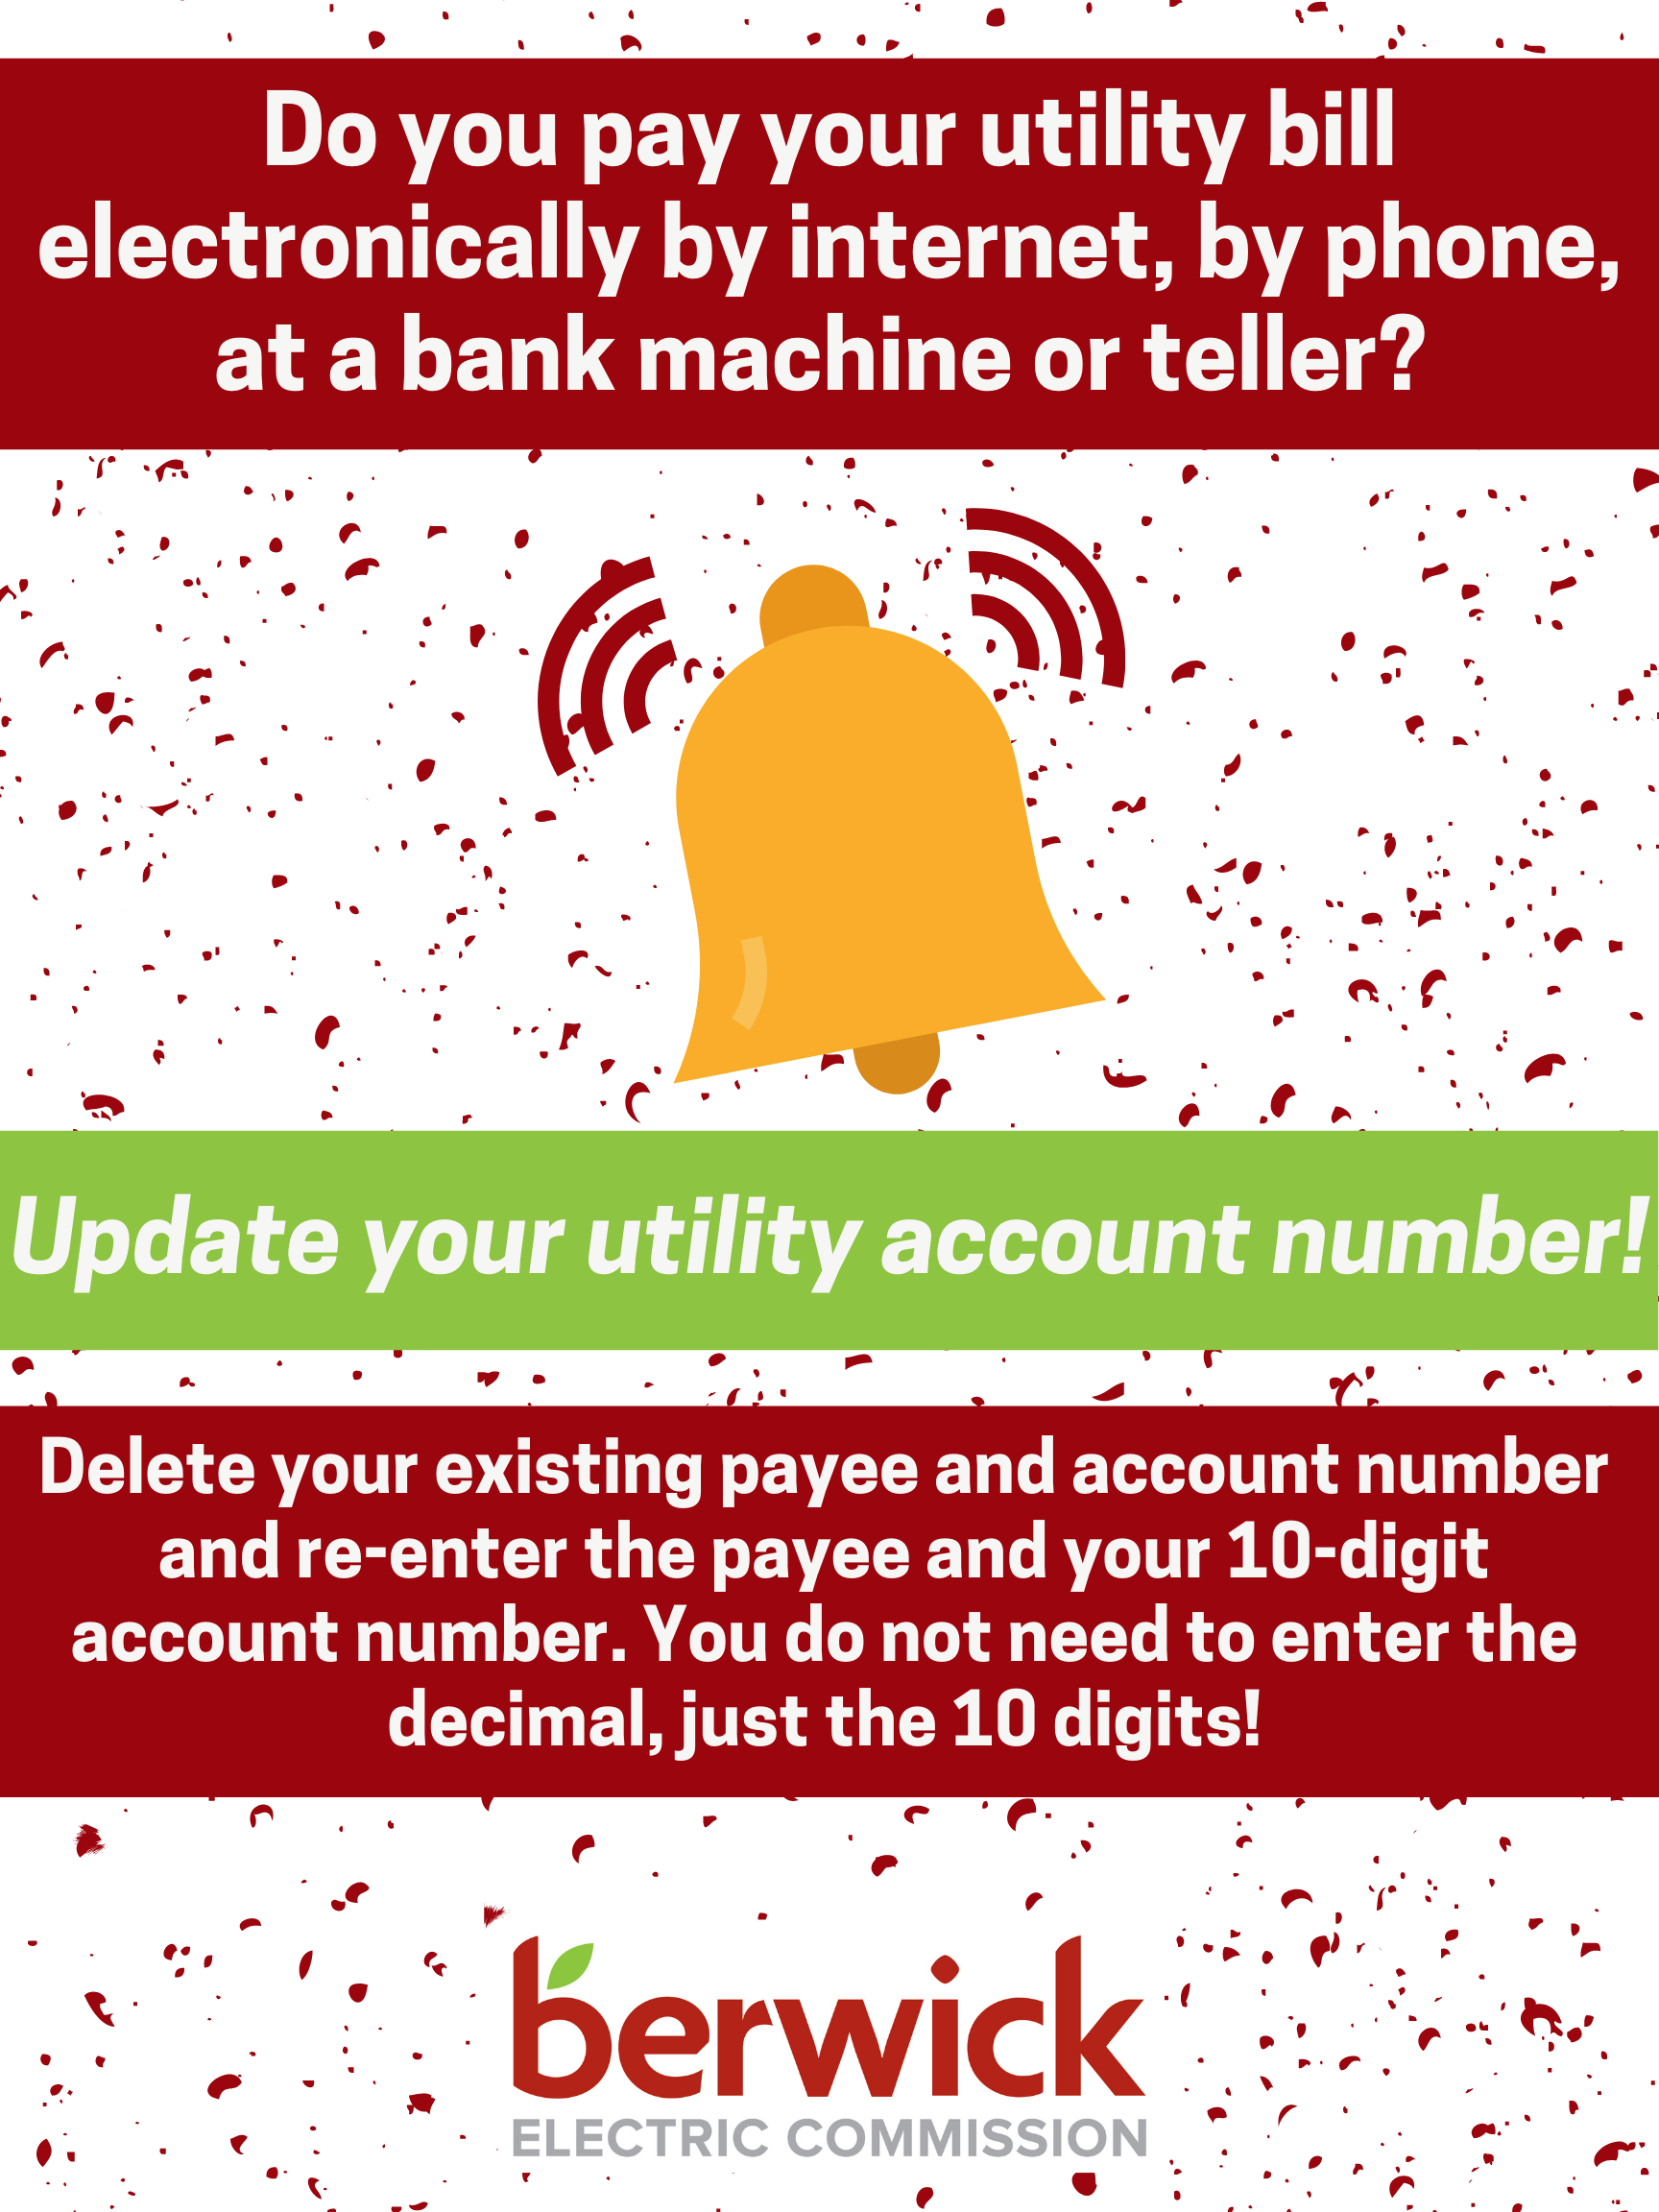 Do you pay your utility bill electronically by internet by phone at a bank machine or teller